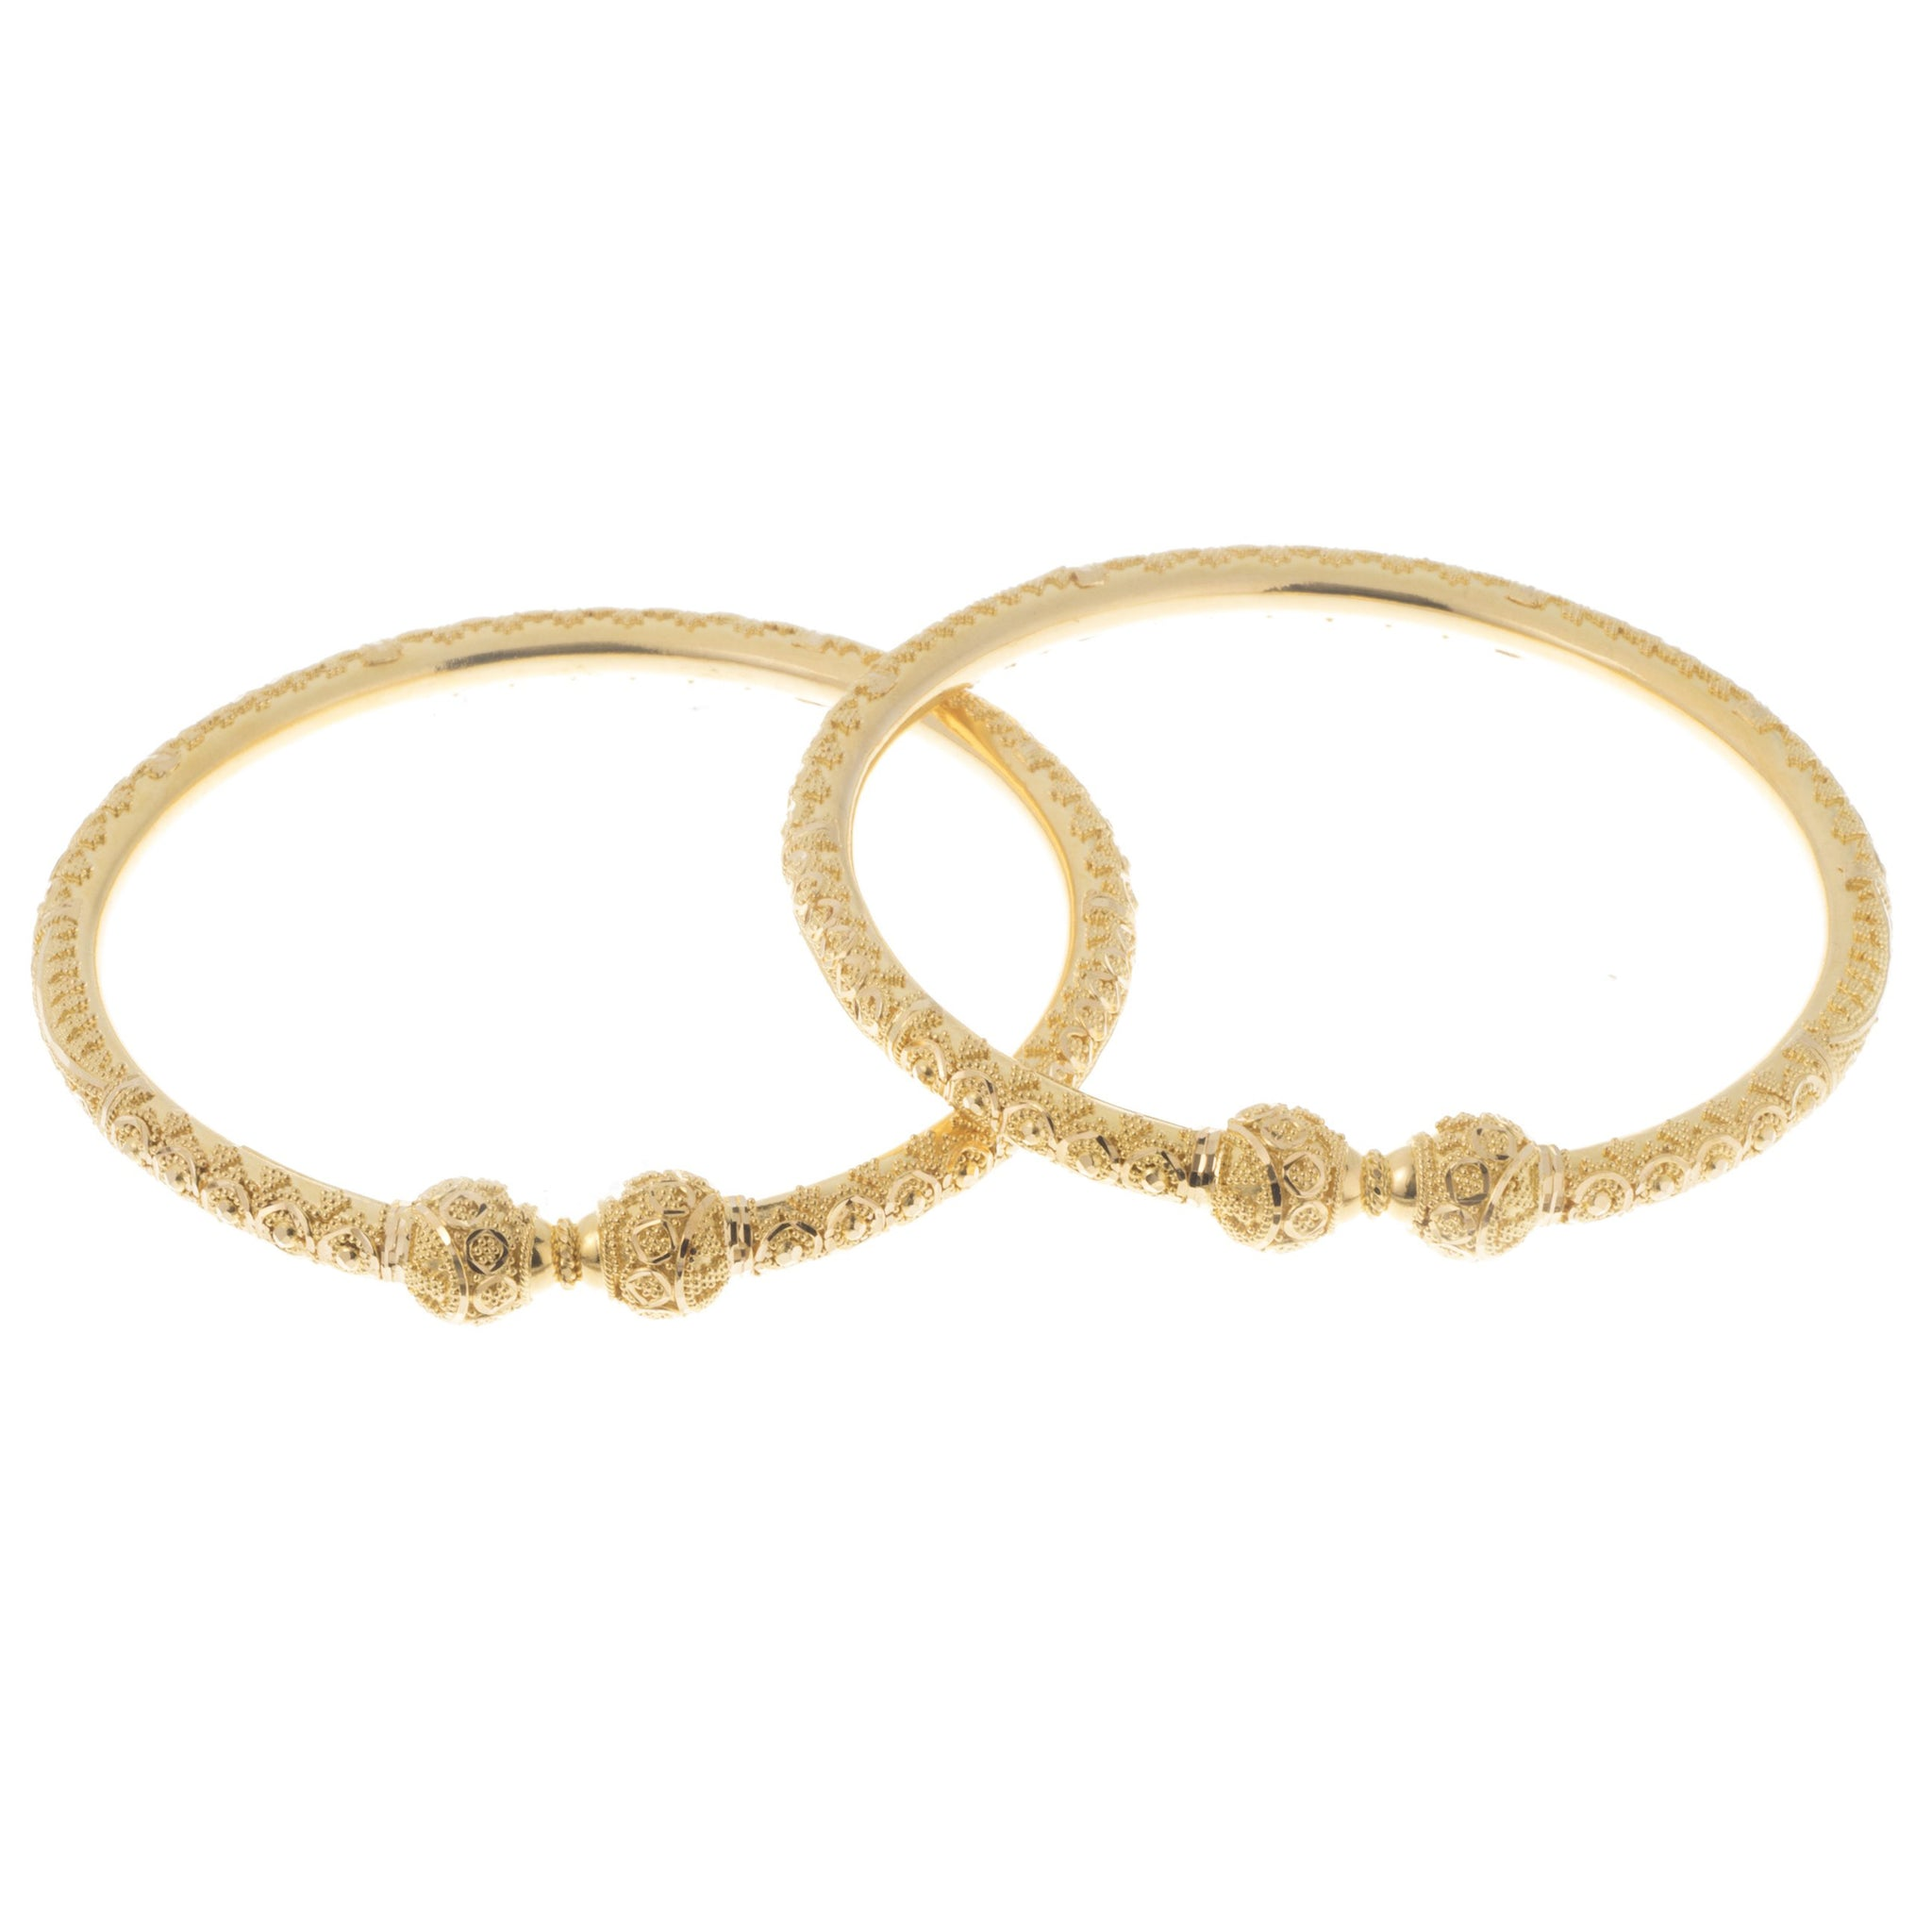 22ct Gold Bangles with Diamond Cut Design and Comfort Fit B-7405